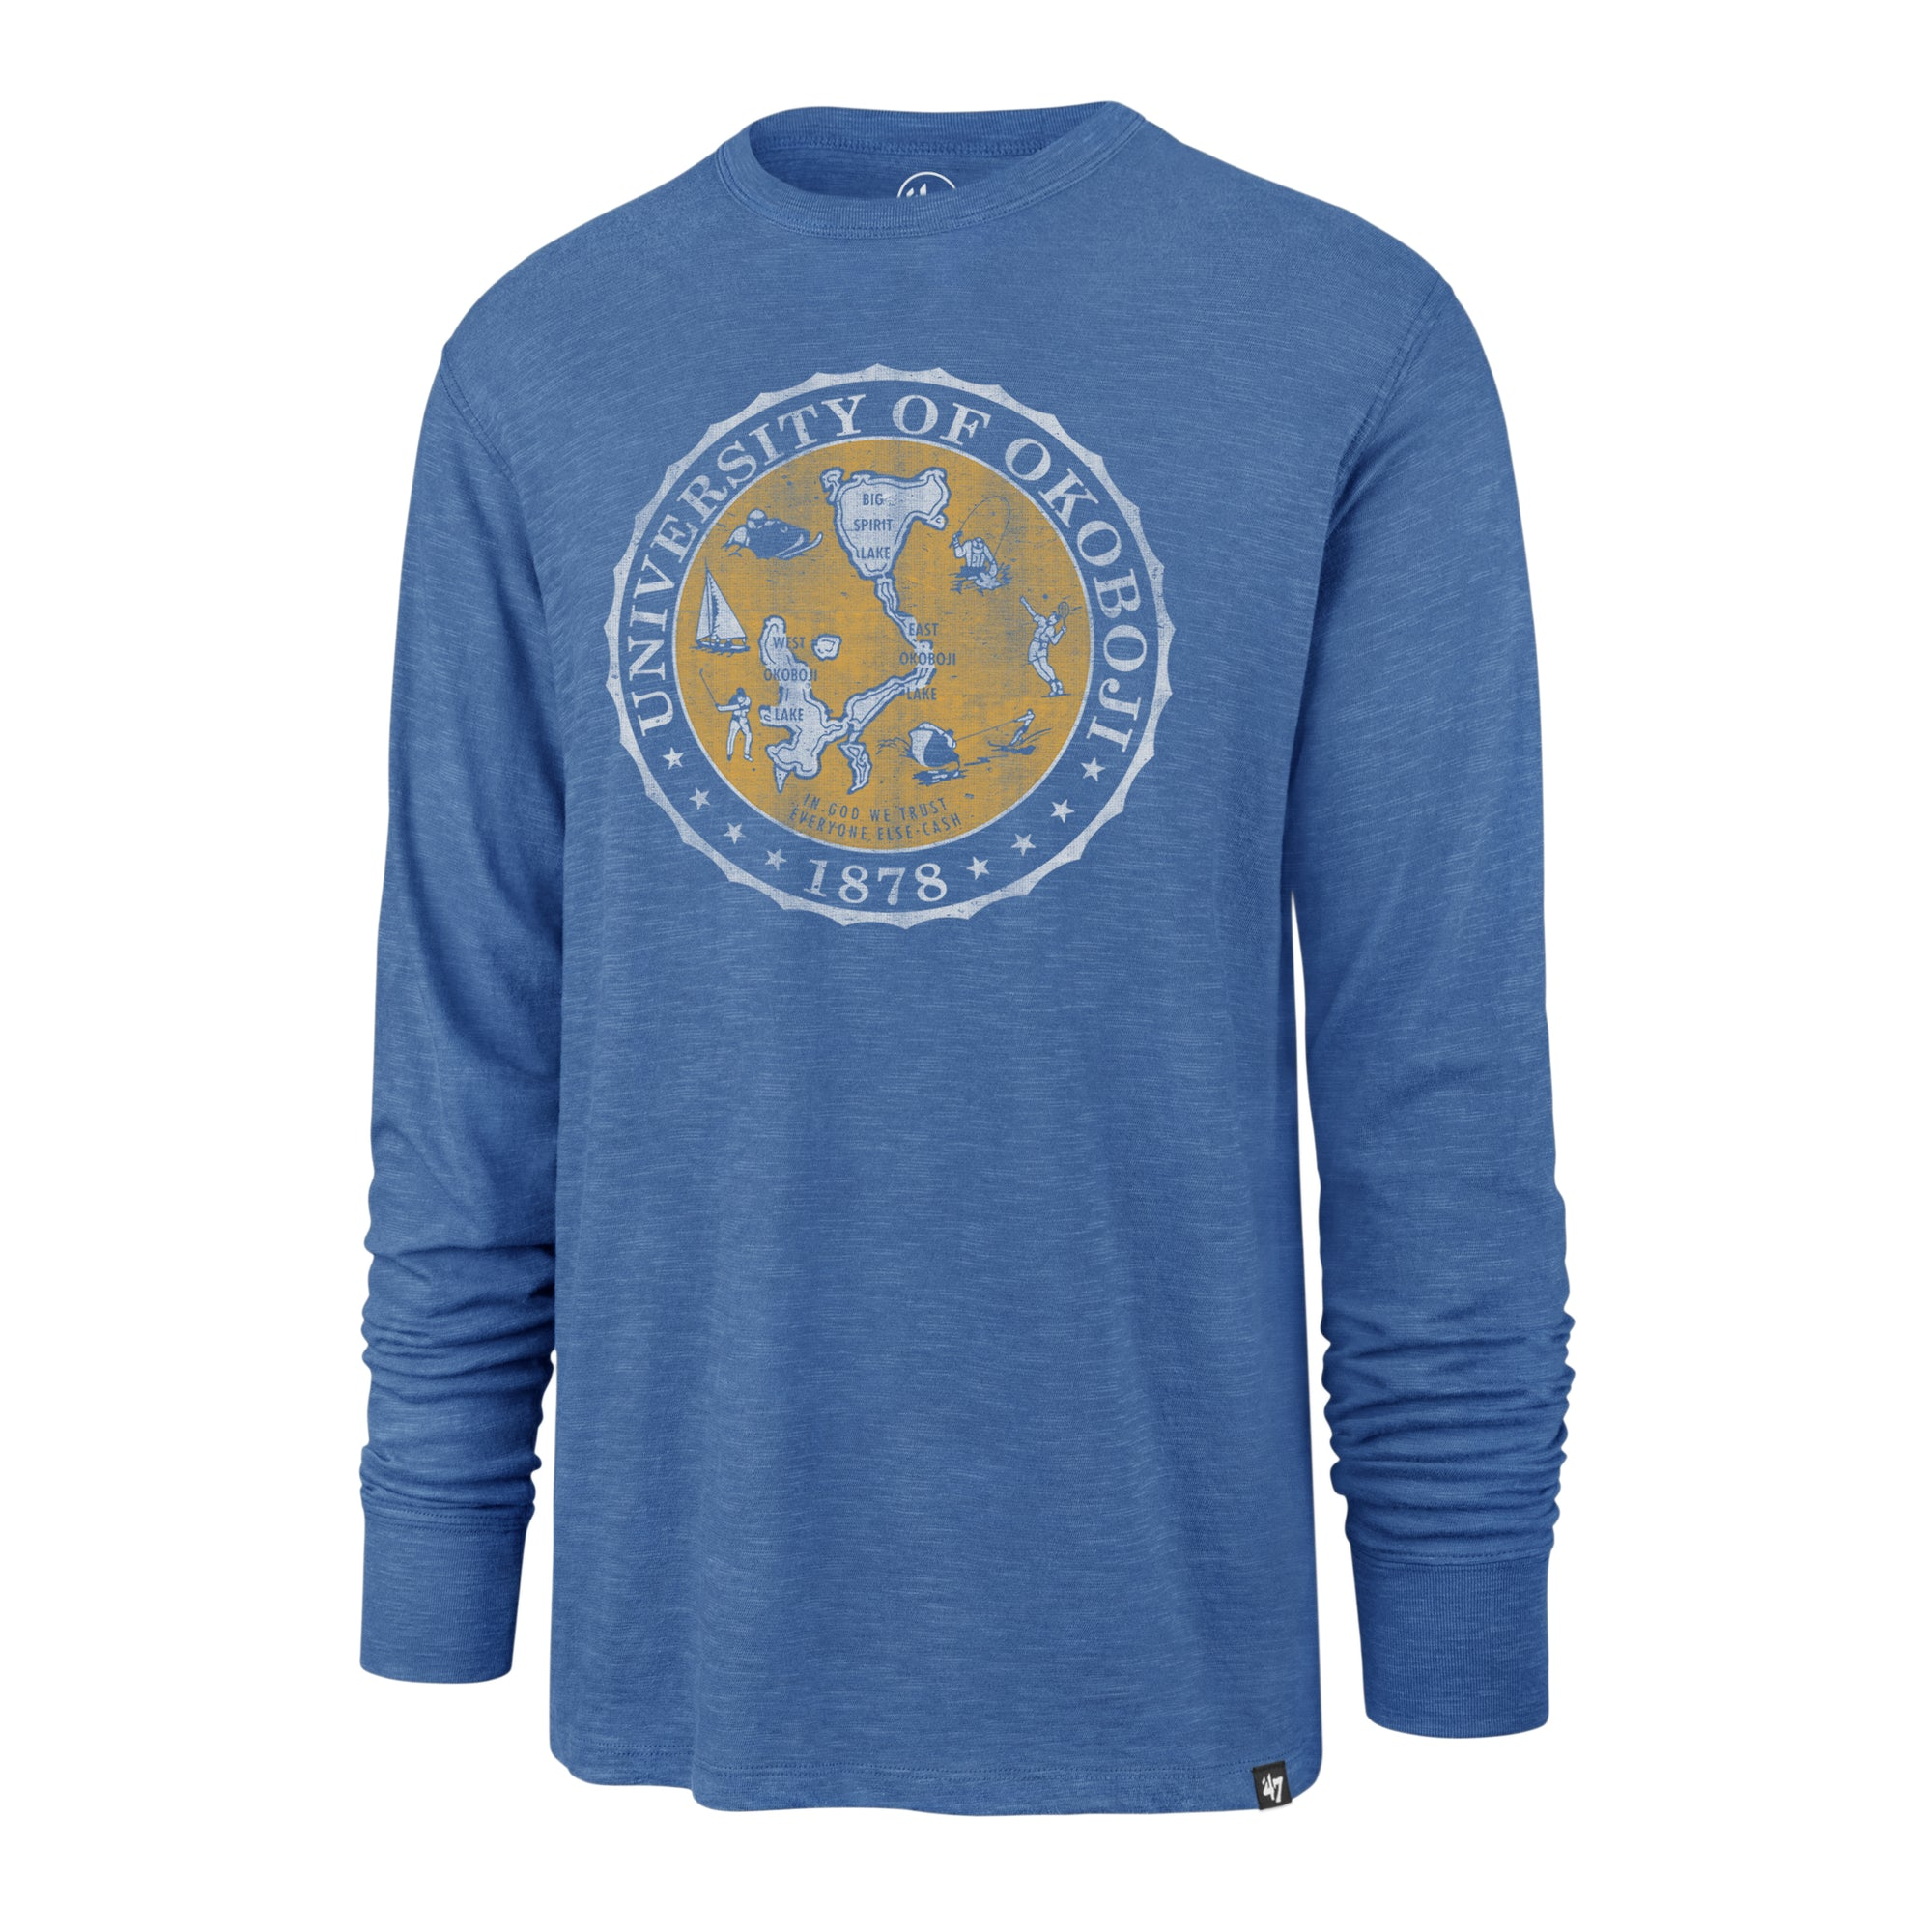 Men's '47 Long Sleeve Crest Tee - Okoboji Blue